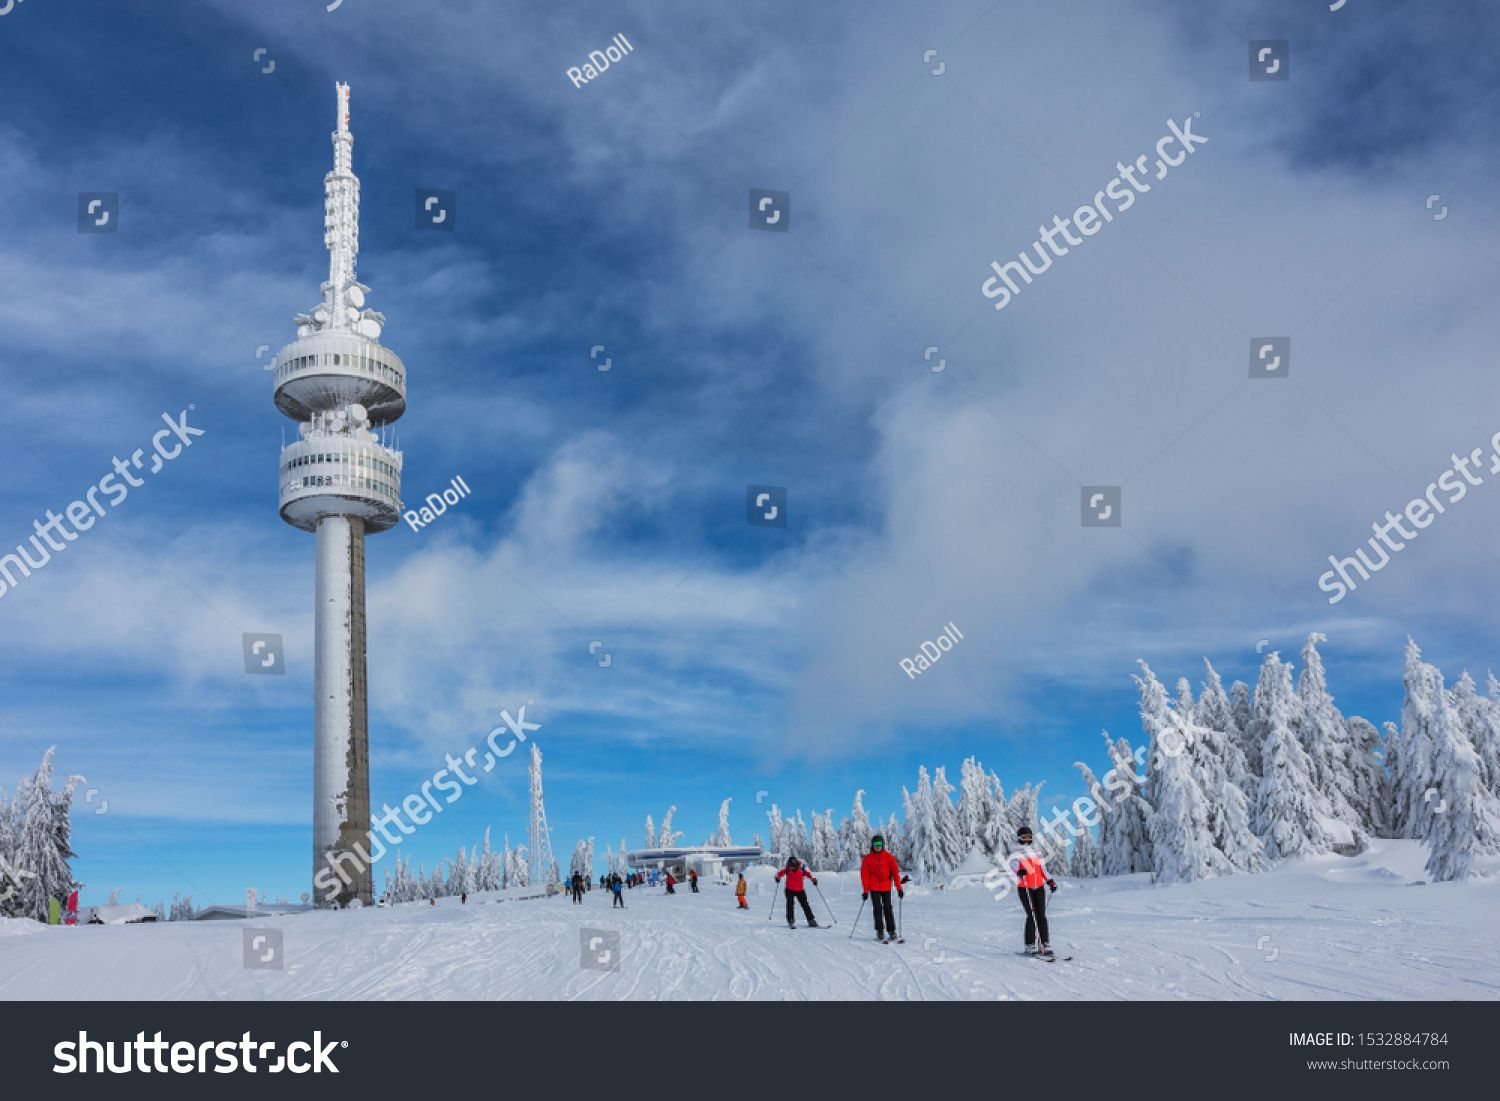 Pamporovo Bulgaria  01312019 Calm sunny morning in ski resort Pamporovo Several people are skiing on white slopes near Snejanka TV tower Sports and recreation concept Sel...